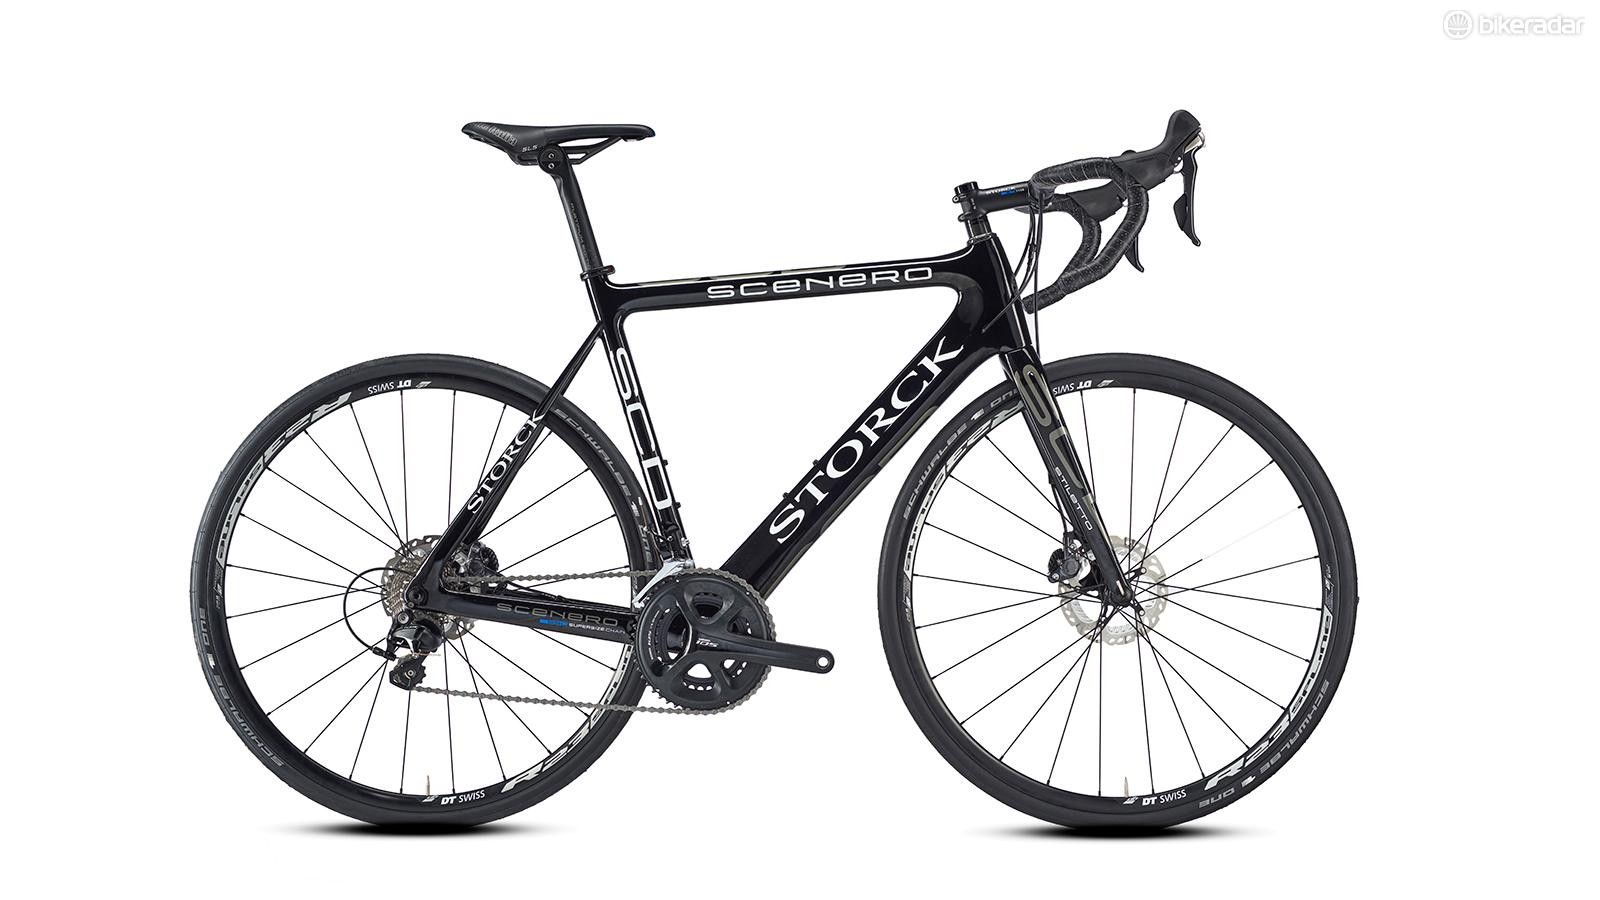 Storck's Scenero Disc blends stealthy looks with no-nonsense speed